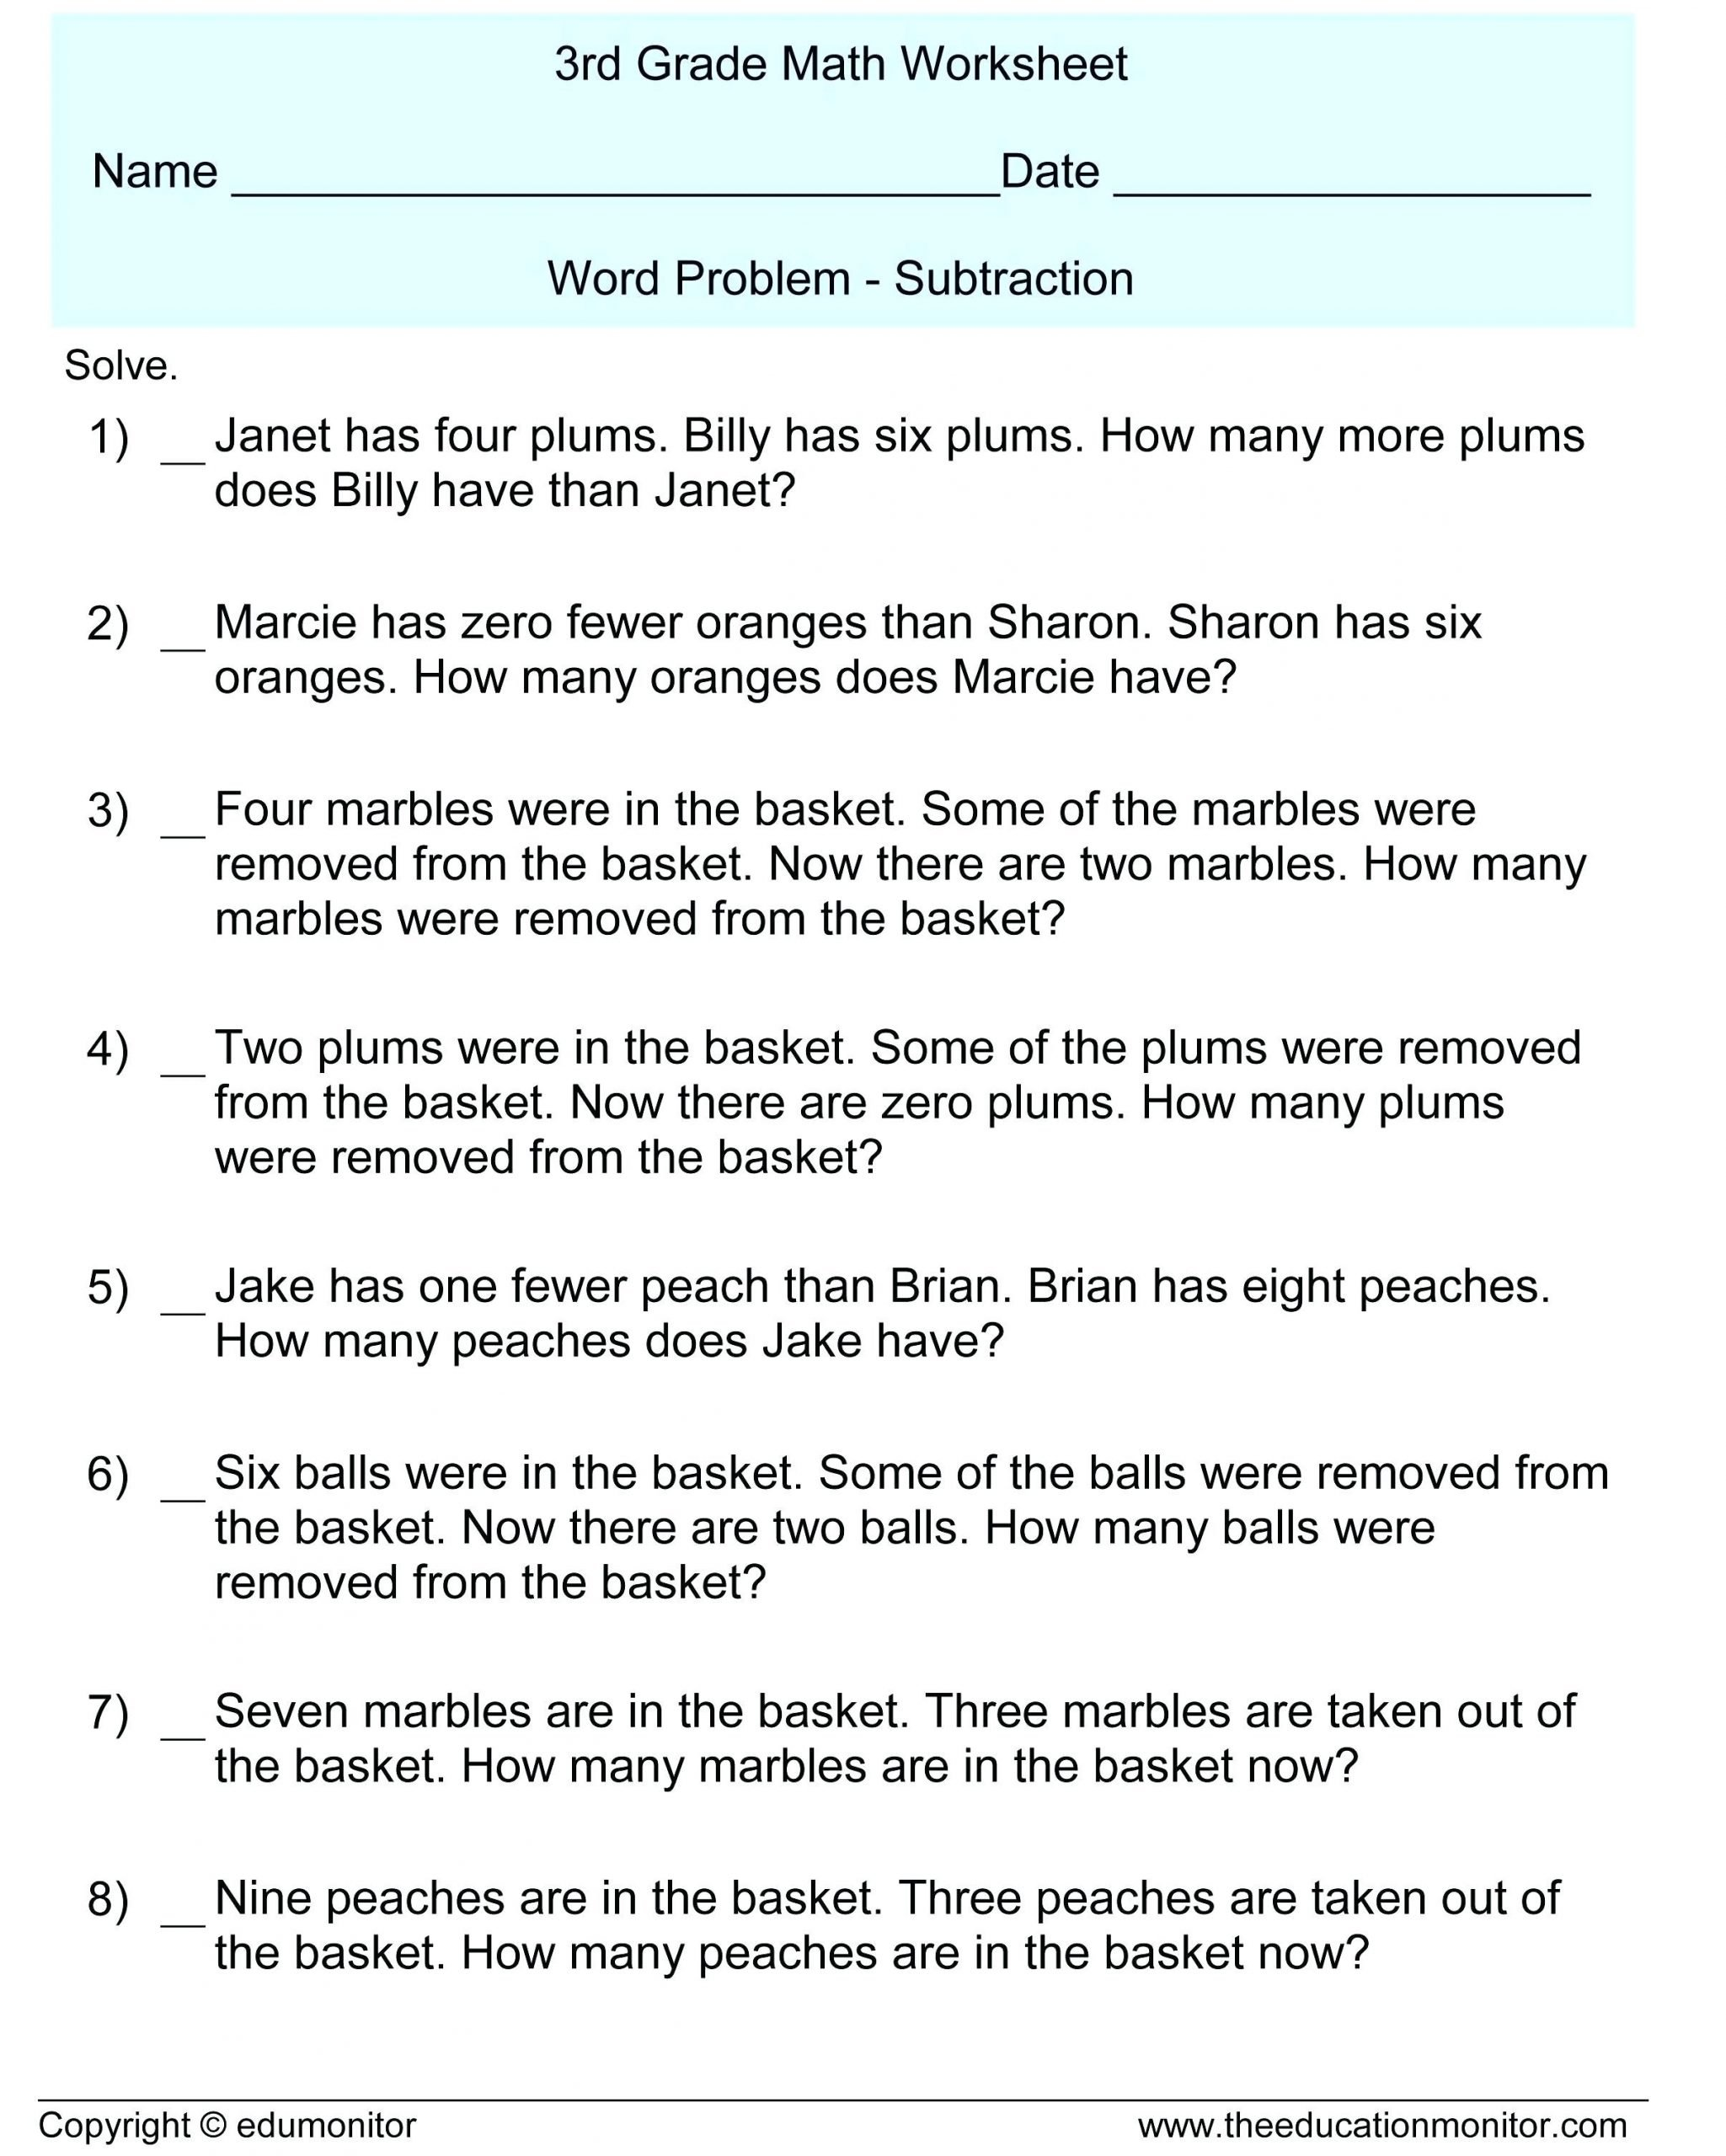 rounding word problems 3rd grade luxury collection of math worksheets grade word problems rounding to the nearest hundred thousand worksheet rounding word problems 3rd grade worksheets